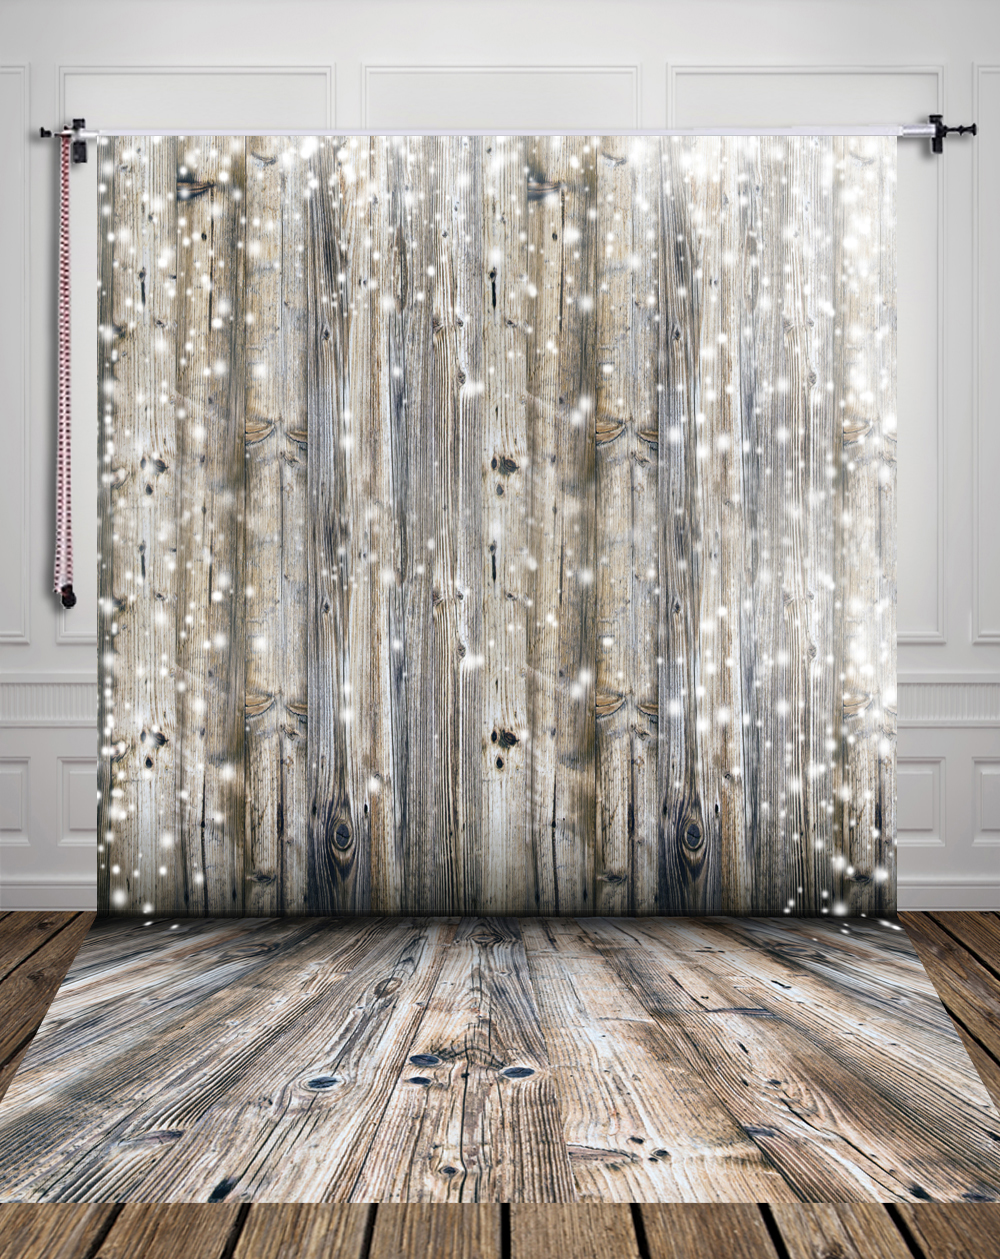 Studio Photography Background Christmas Wood Backdrop Studio Newborn Backdrops Snow Sparkle Backdrop D-2389 huayi 10x20ft wood letter wall backdrop wood floor vinyl wedding photography backdrops photo props background woods xt 6396